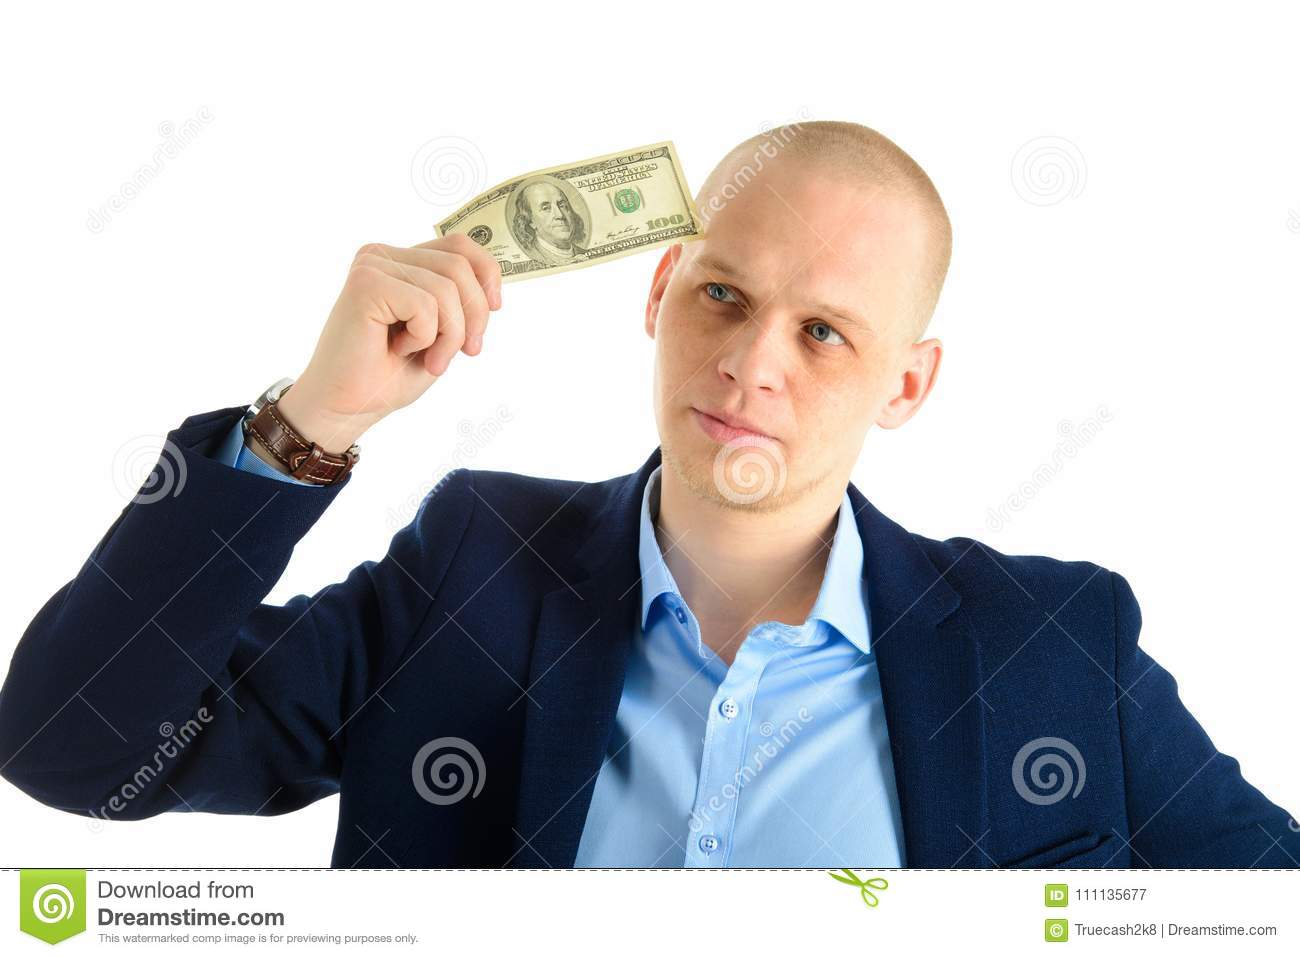 Thoughtful businessman in suit on white background holding cash. Thinking about making money.